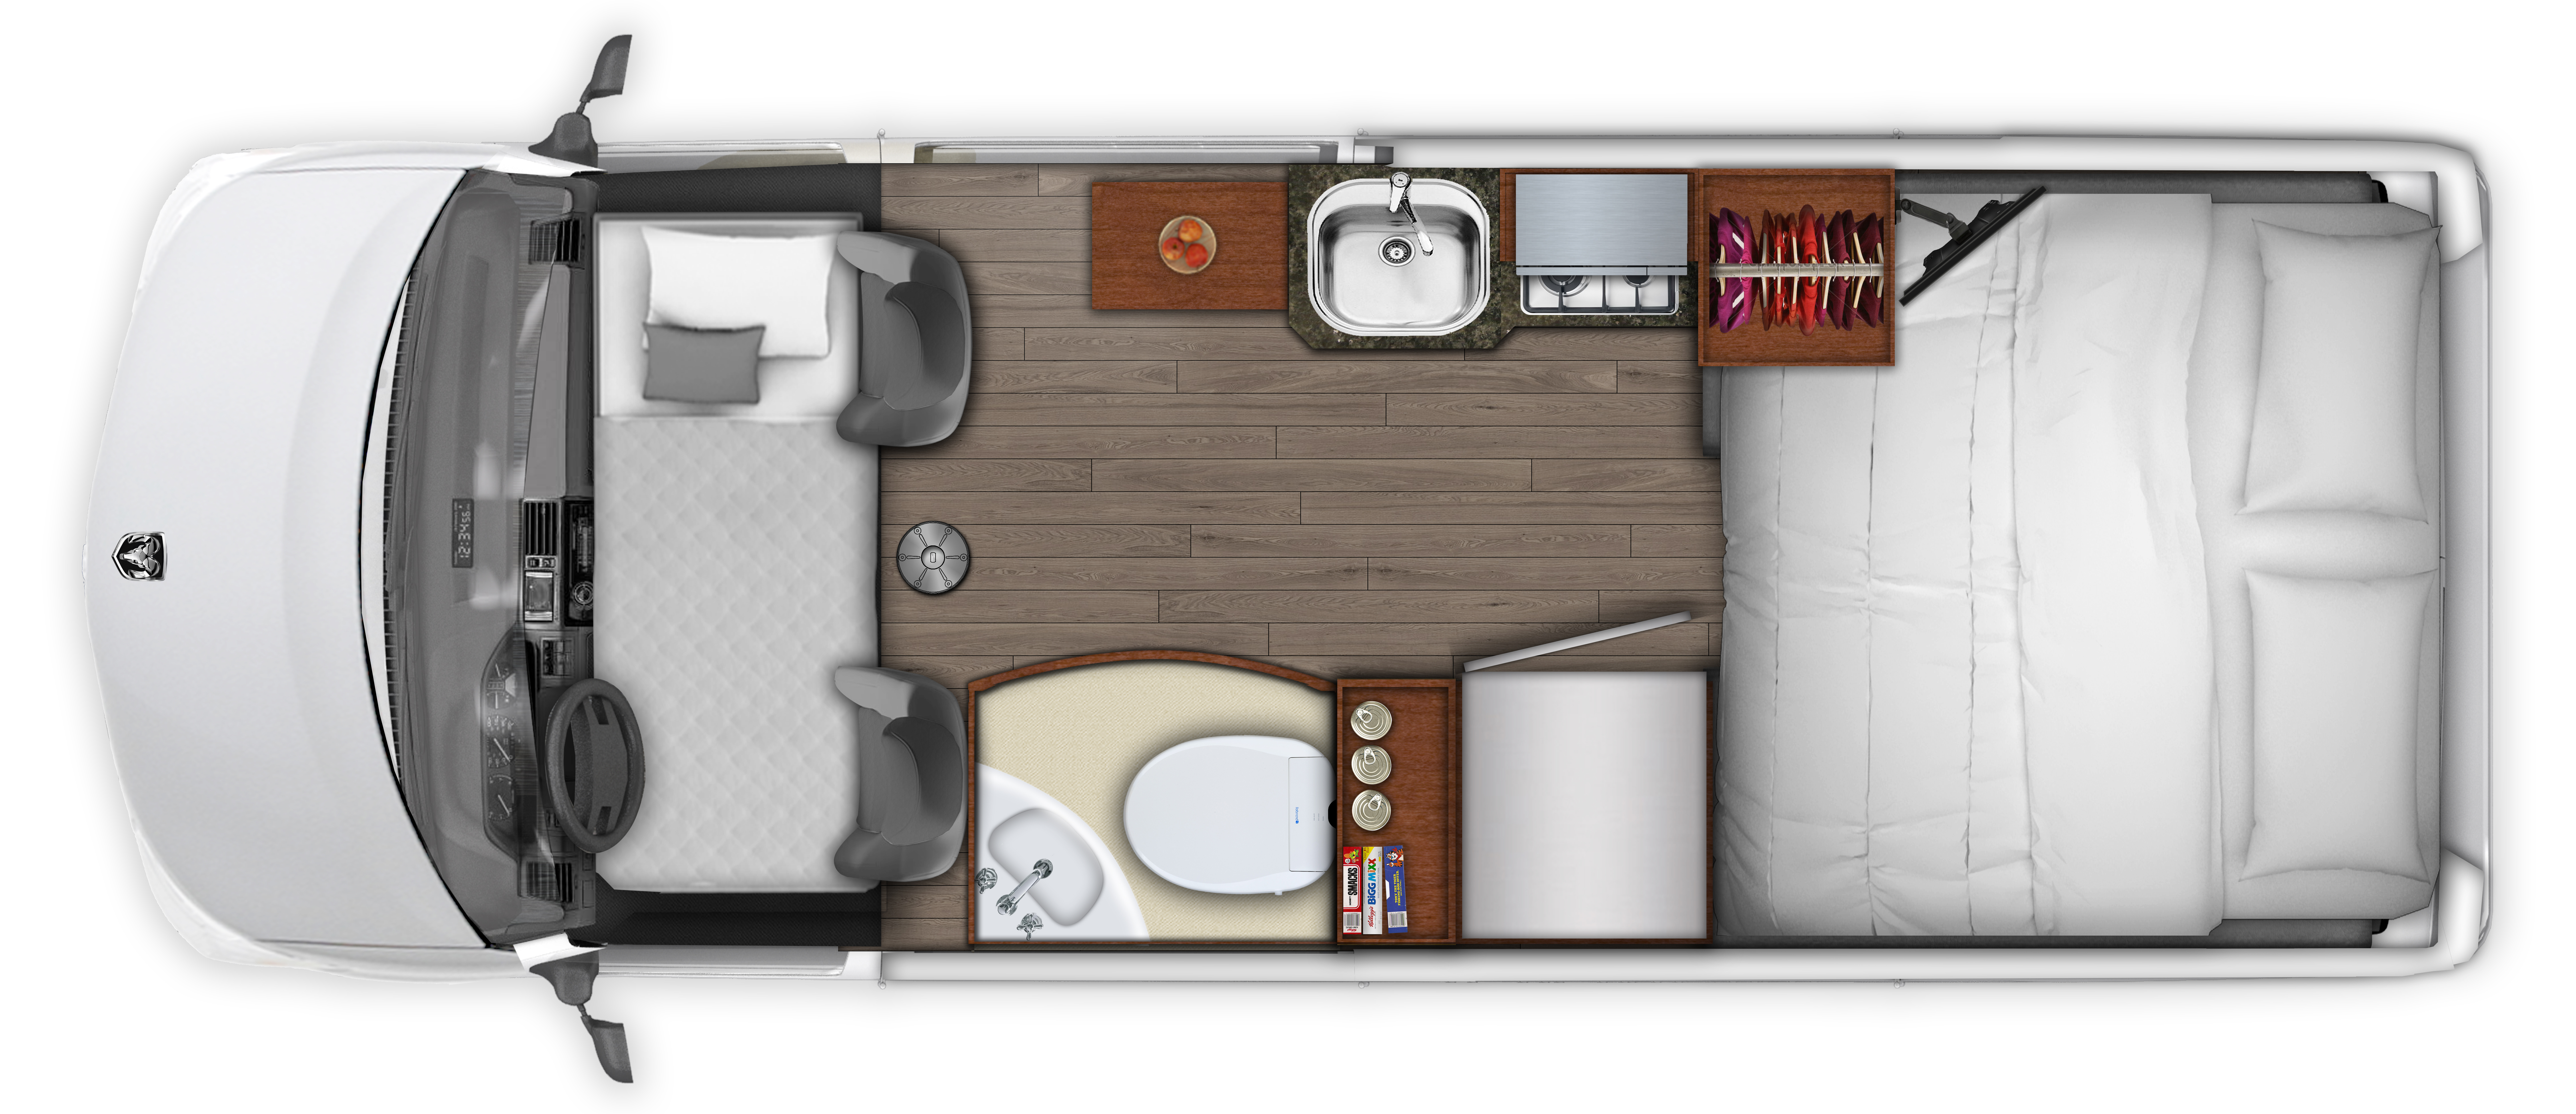 2019 Roadtrek Zion Floor Plan